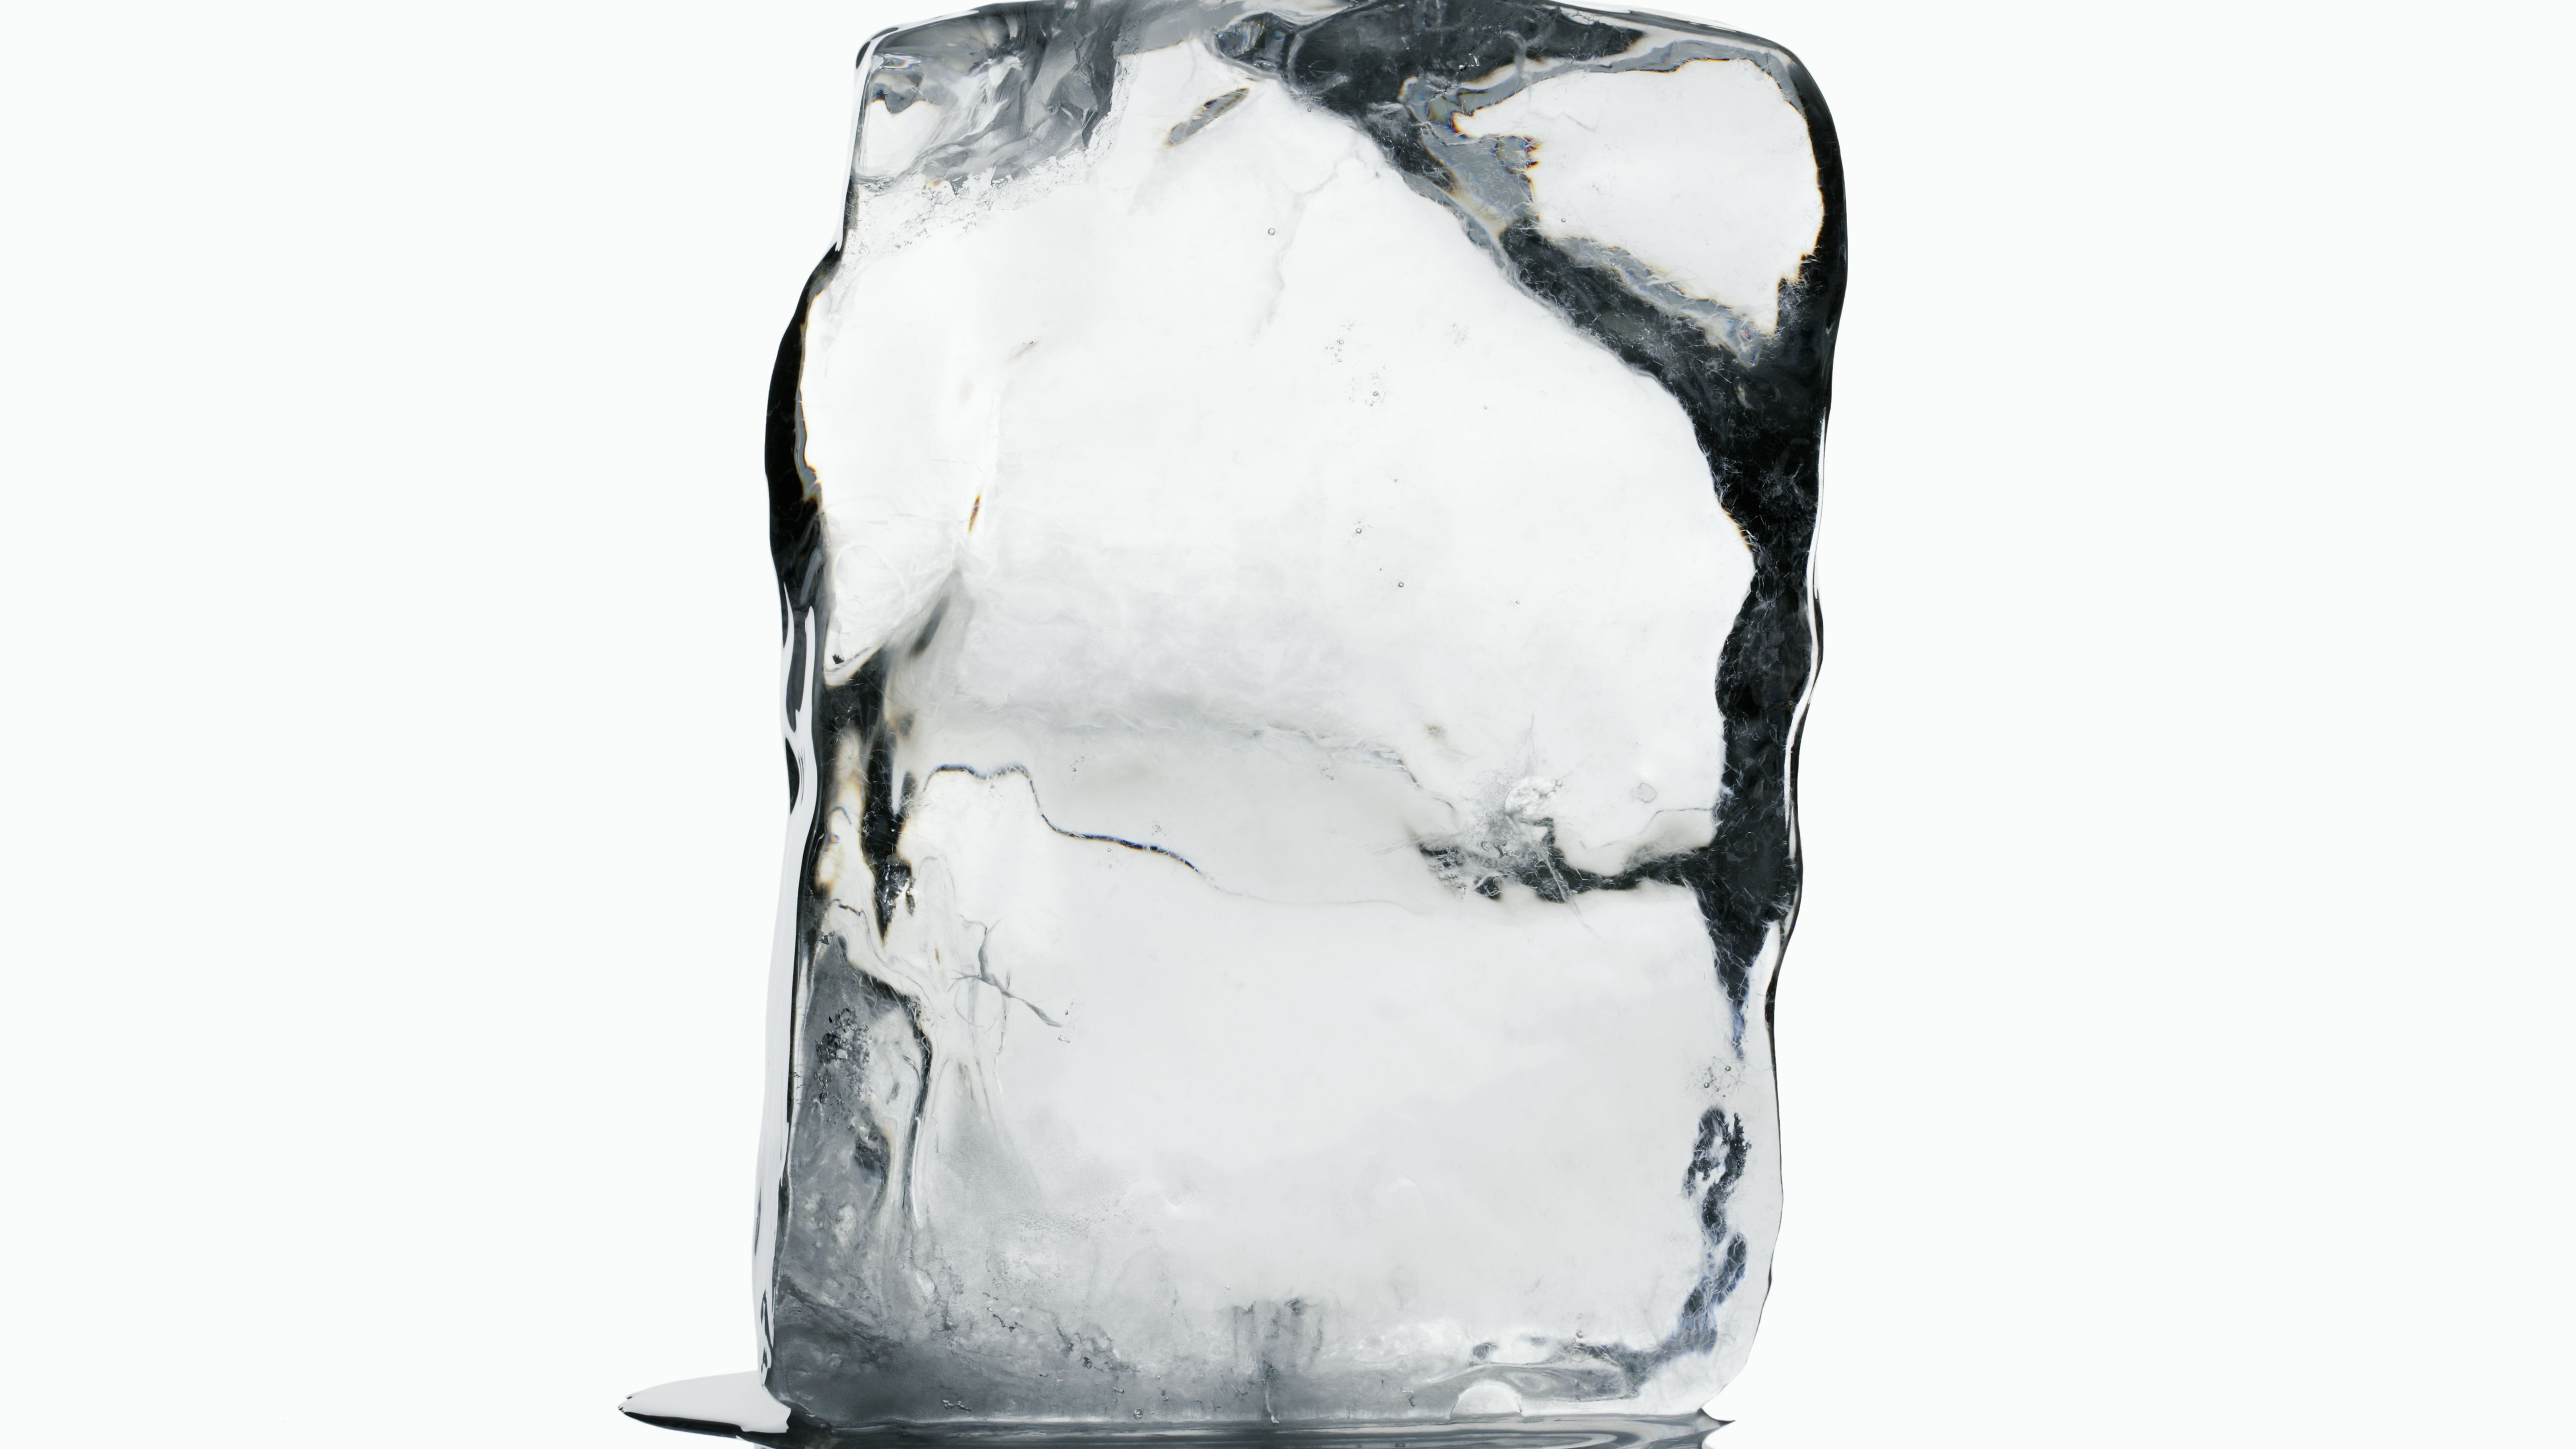 Is It True Hot Water Freezes Faster Than Cold?